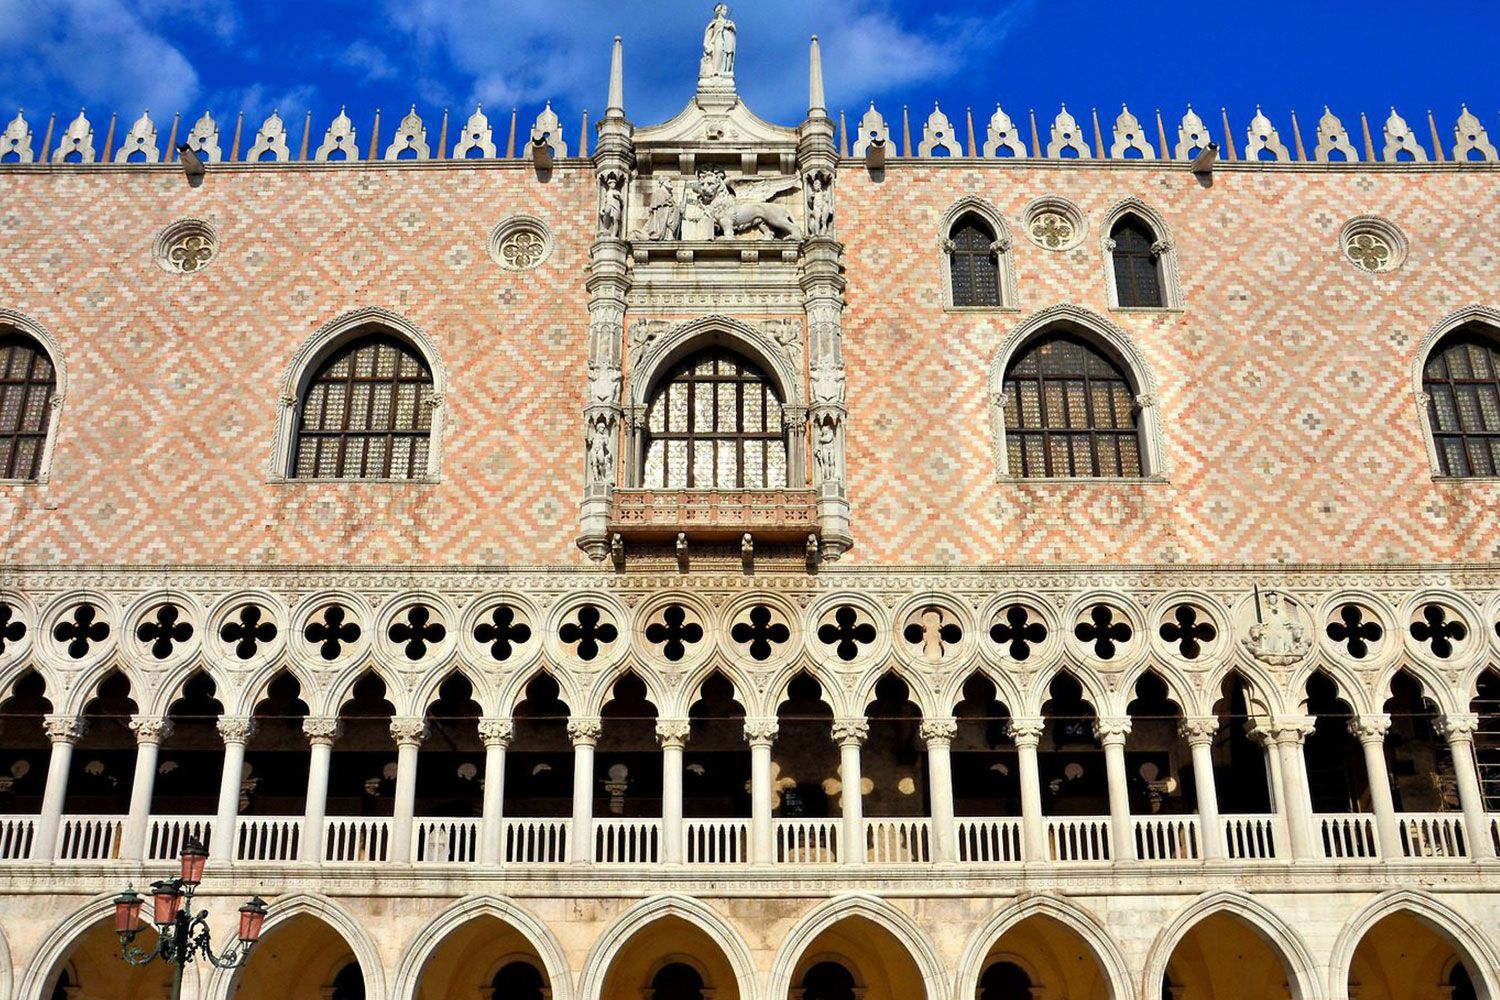 The Doge's Palace in Venice is a miracle in stone